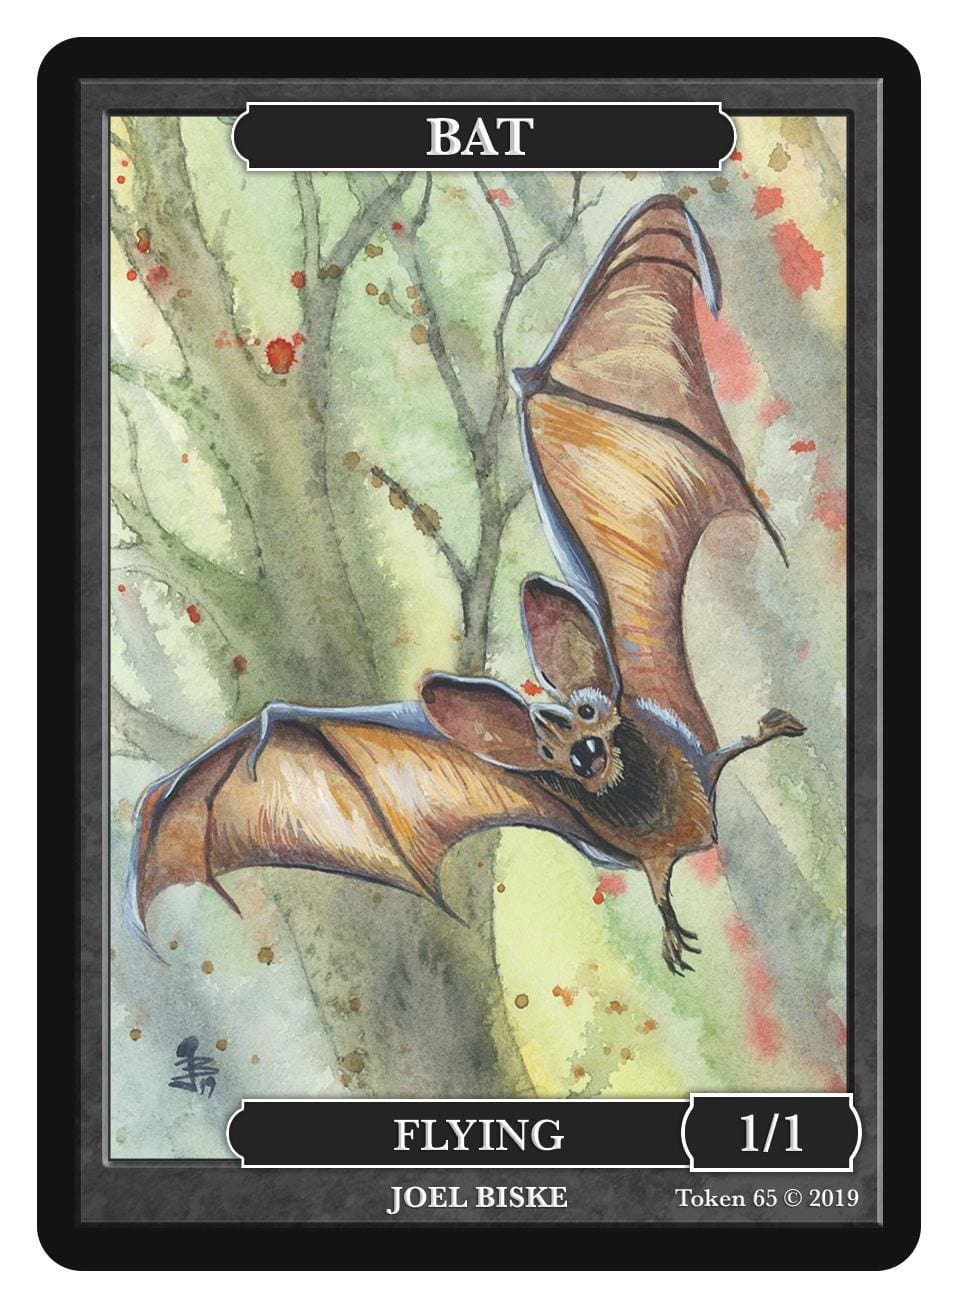 Bat Token (1/1 - Flying) by Joel Biske - Token - Original Magic Art - Accessories for Magic the Gathering and other card games